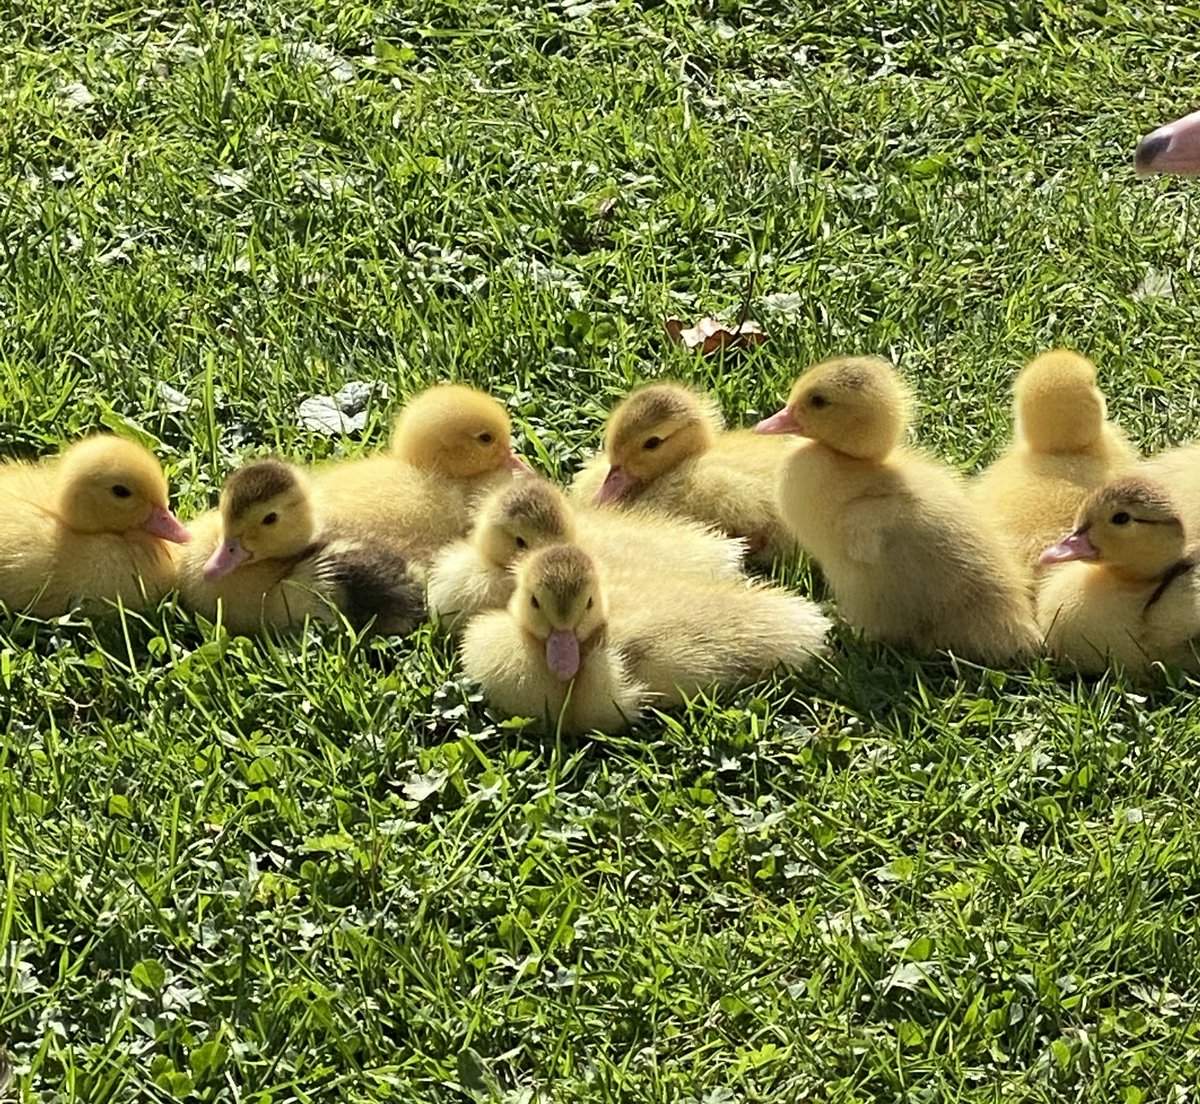 Just some wholesome ducklings to make you smile 🥰 https://t.co/8tYUXIMMz3